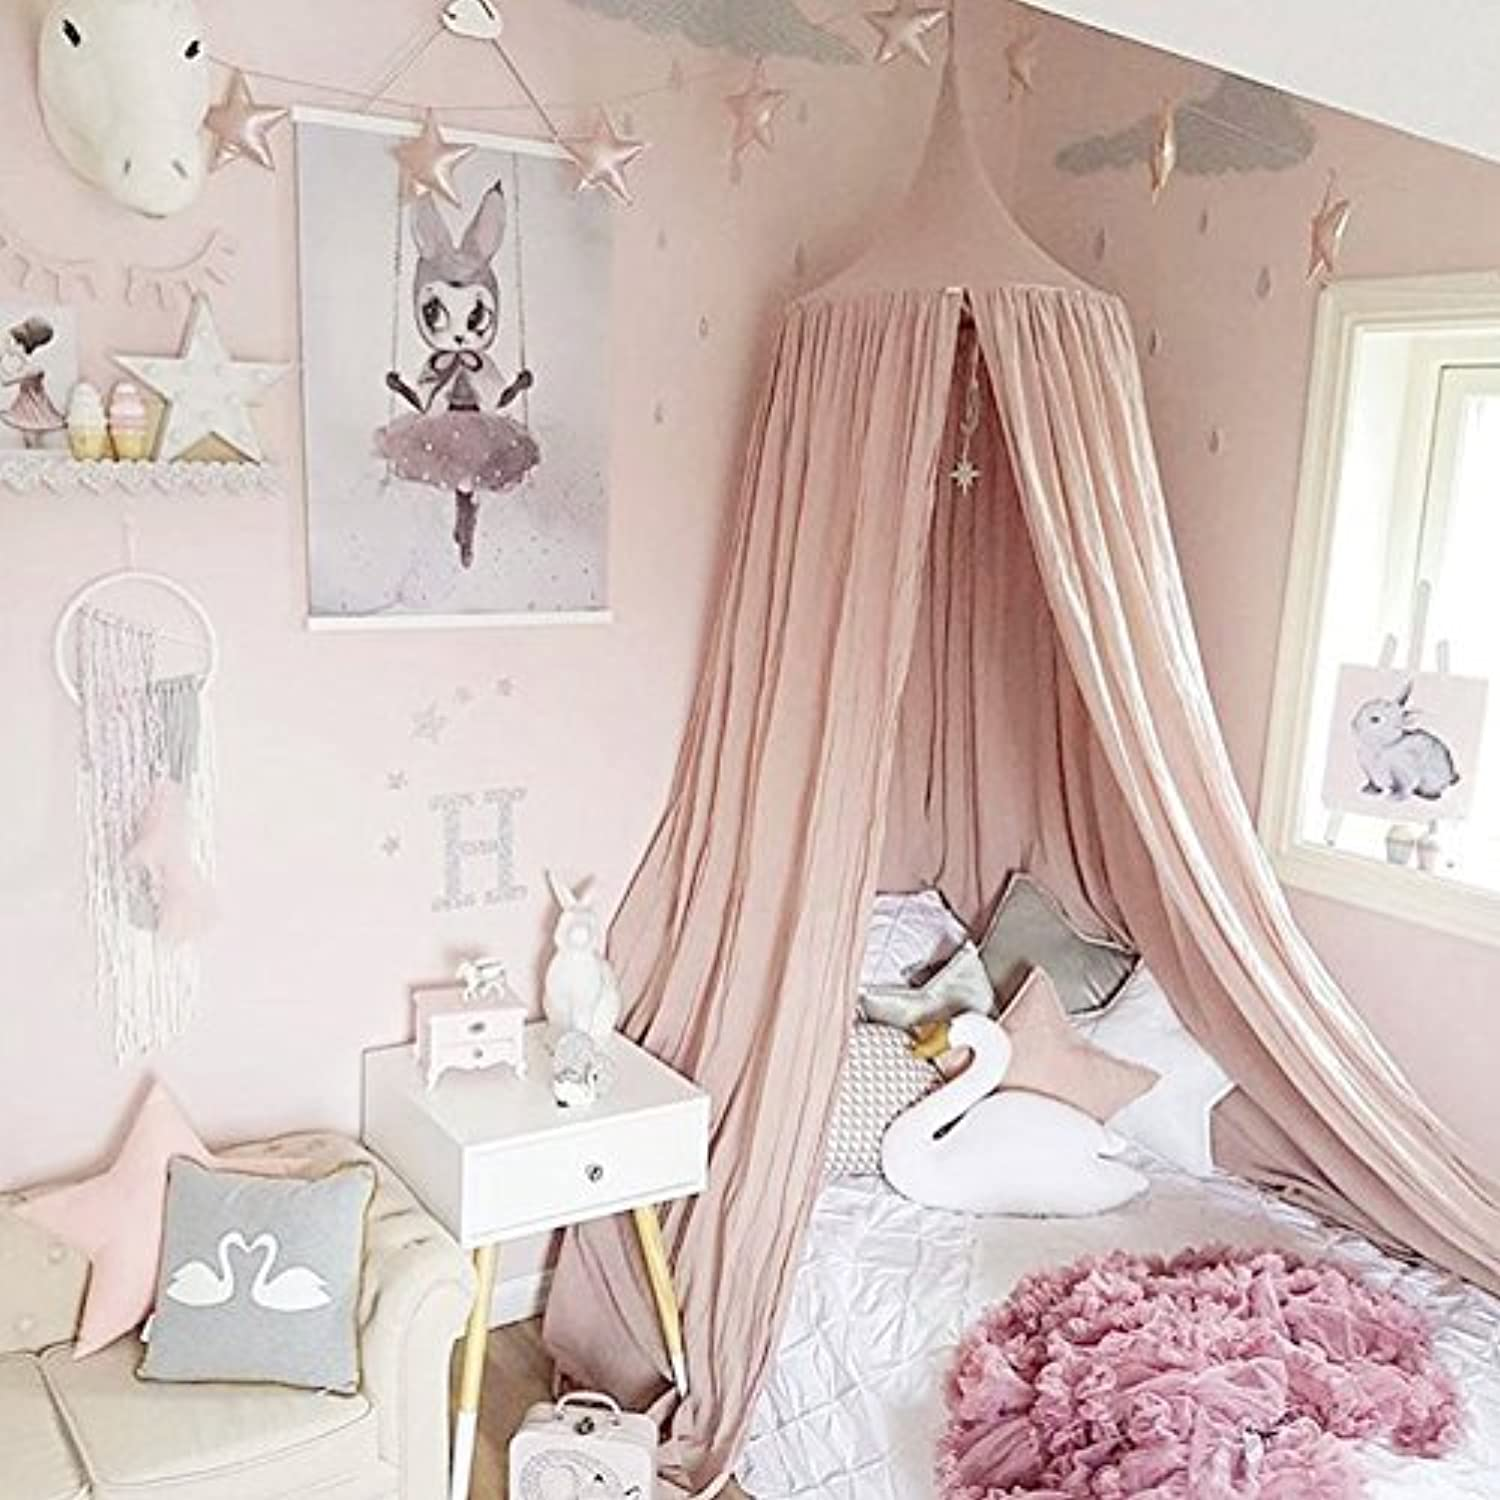 Princess Bed Canopy Mosquito Net for Kids Baby Crib Round Dome Kids Indoor Outdoor Castle Play Tent Hanging House Decoration Reading nook Cotton Canvas Height 240cm / 94.9 inch (Princess Pink) [並行輸入品]